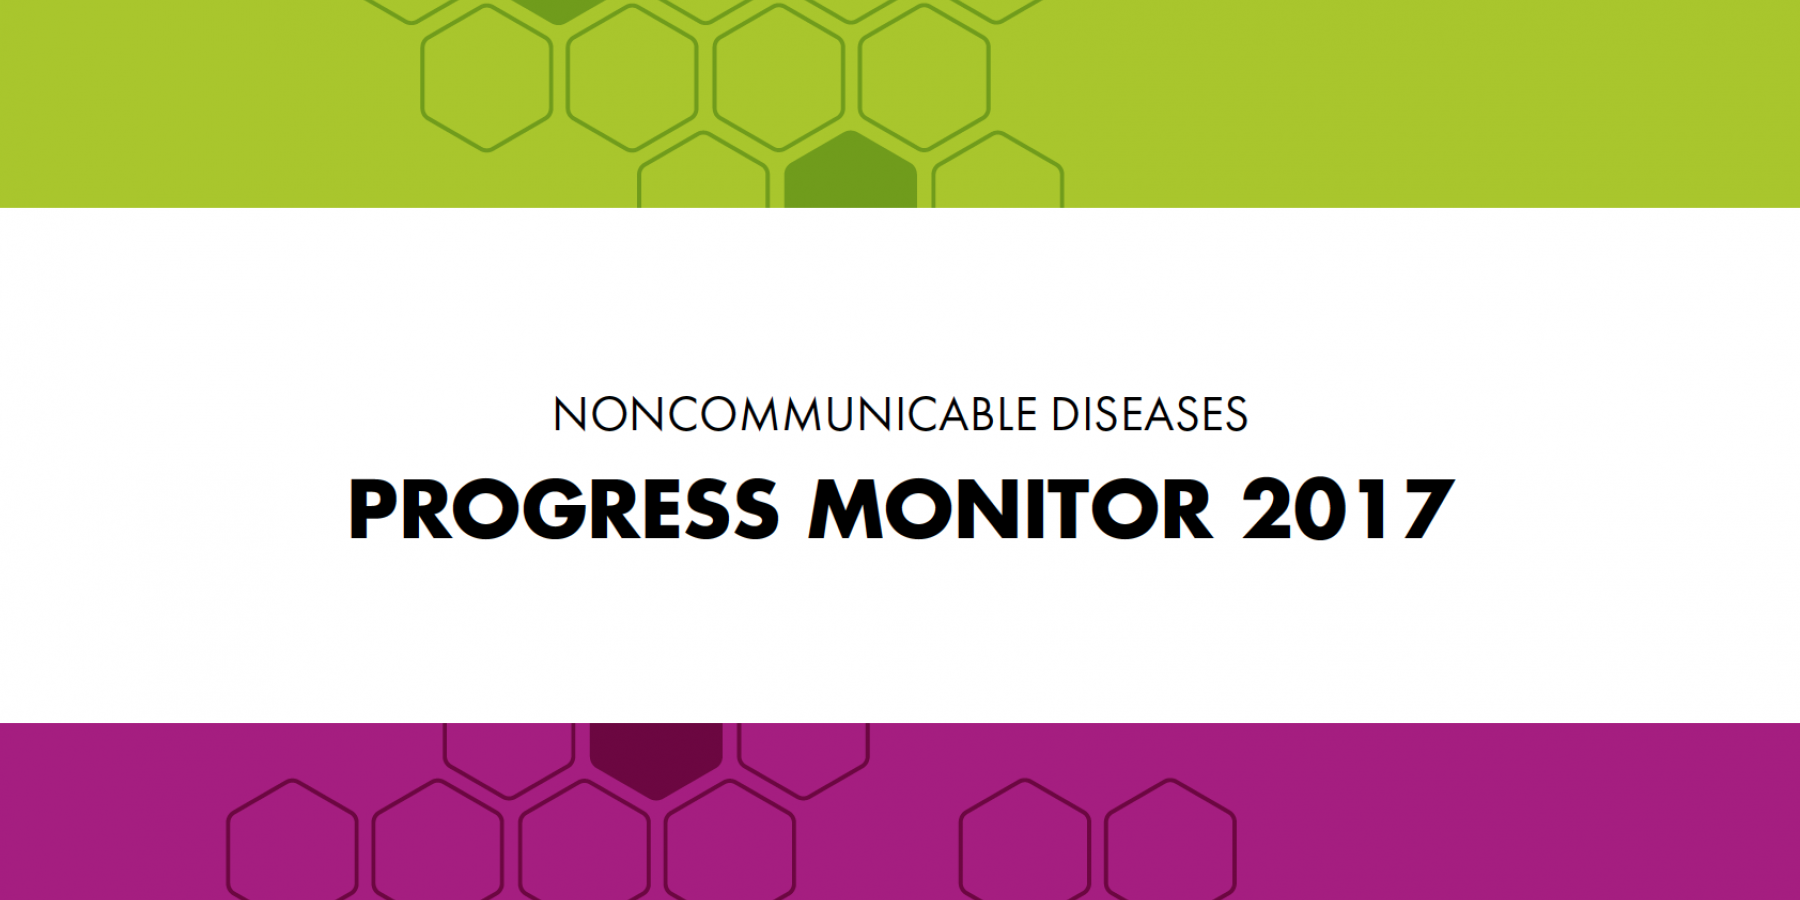 WHO launches new NCDs Progress Monitor